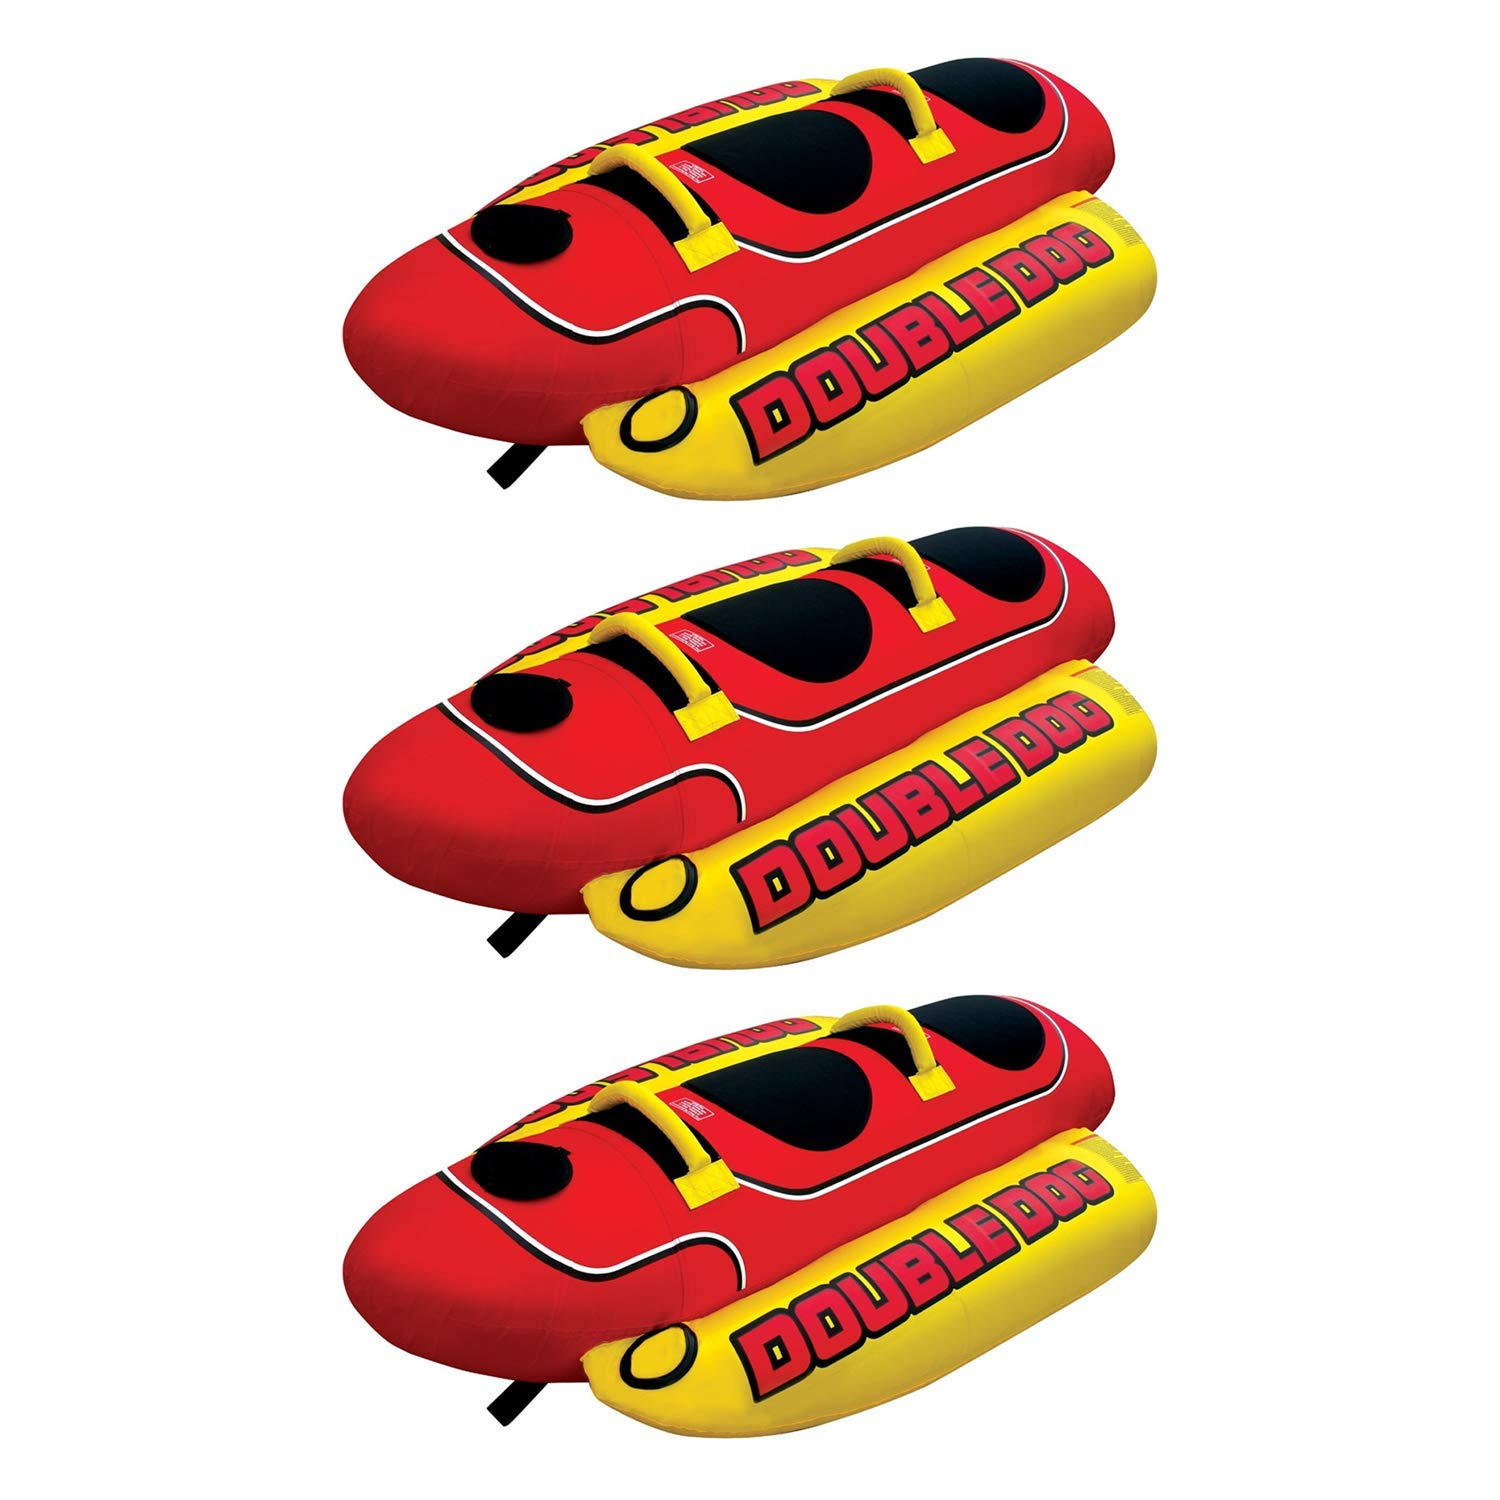 7602a59e60c Get Quotations · AIRHEAD HD-2 Hot Dog Double Rider Towable Inflatable Boat  Lake Tube 1-2